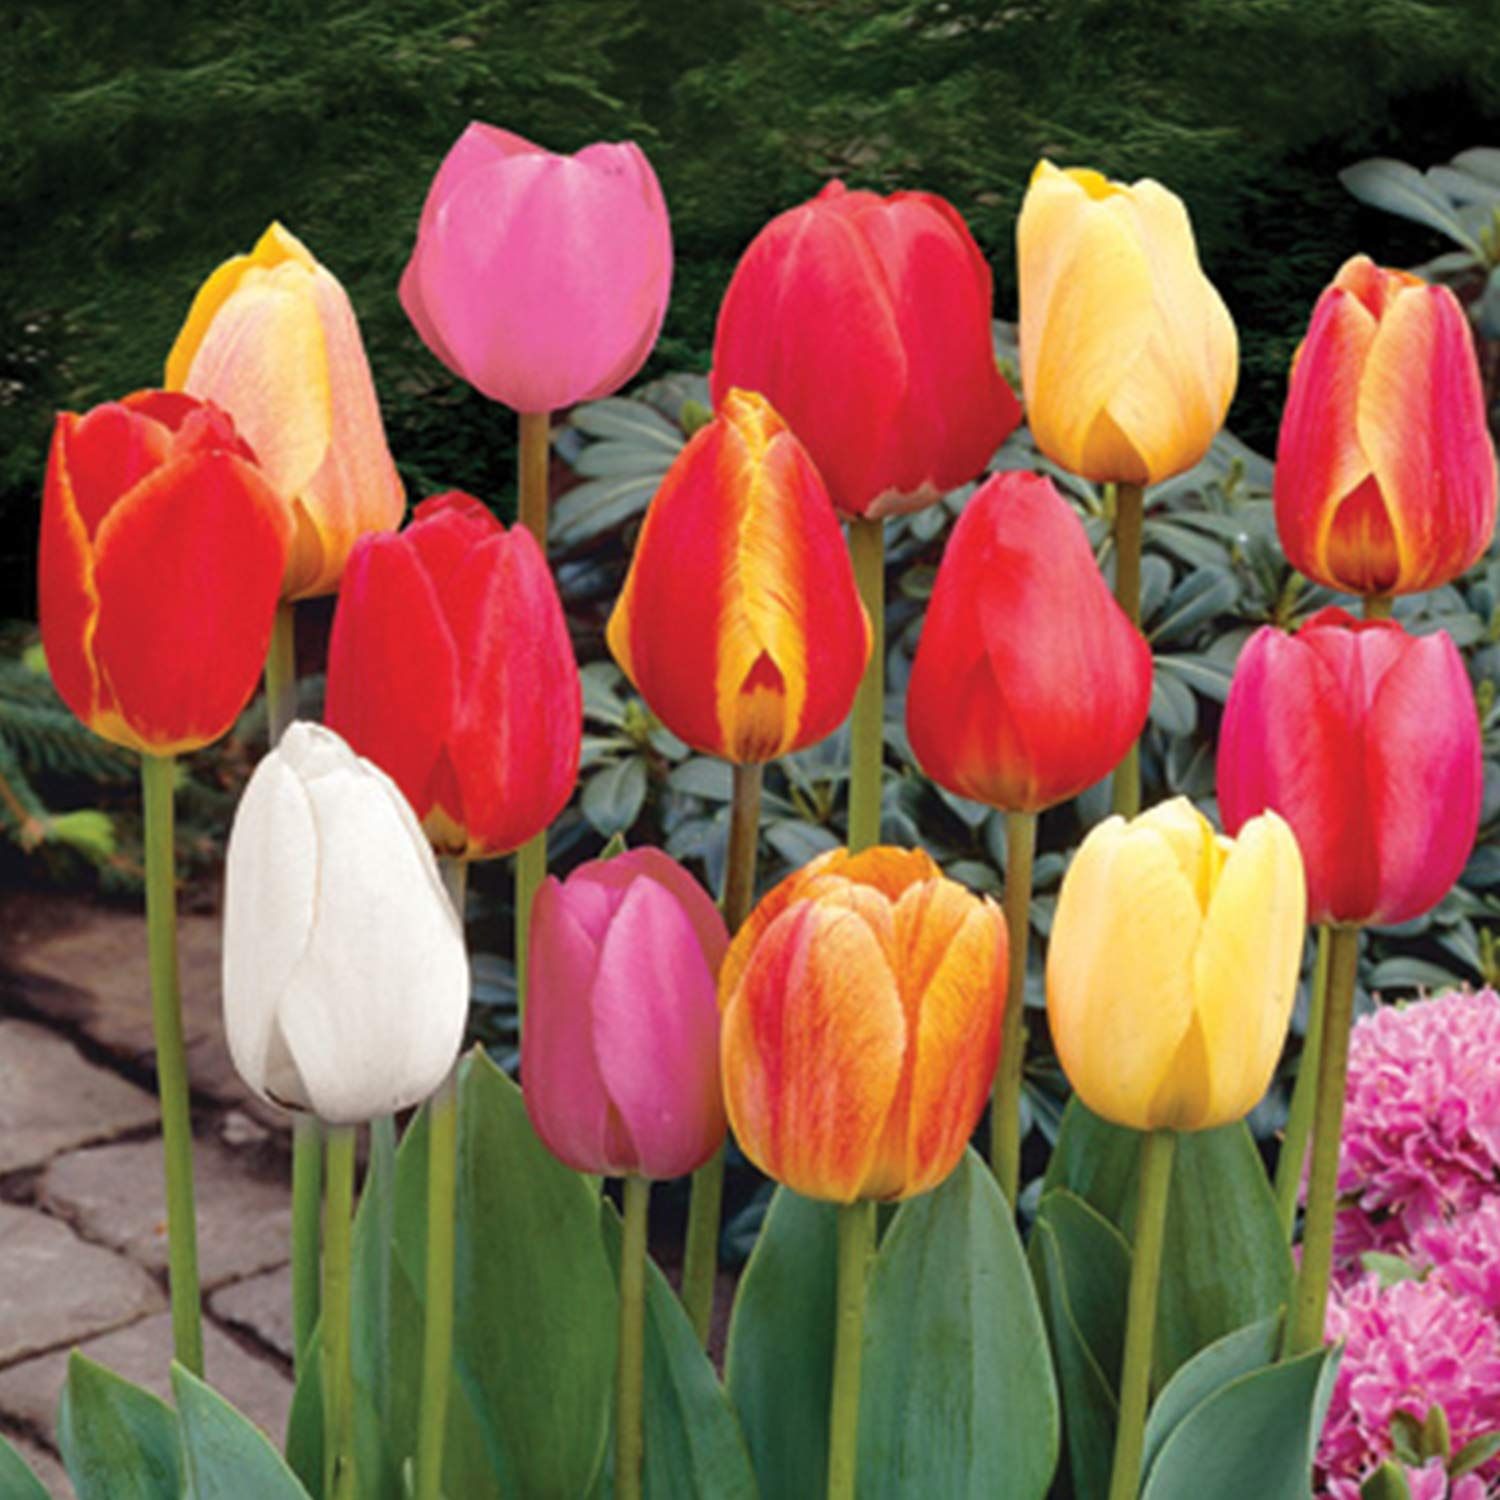 Burpee Perennial Tulip Mix | 20 Large Flowering Fall Bulbs for Planting, Multiple Colors by Burpee